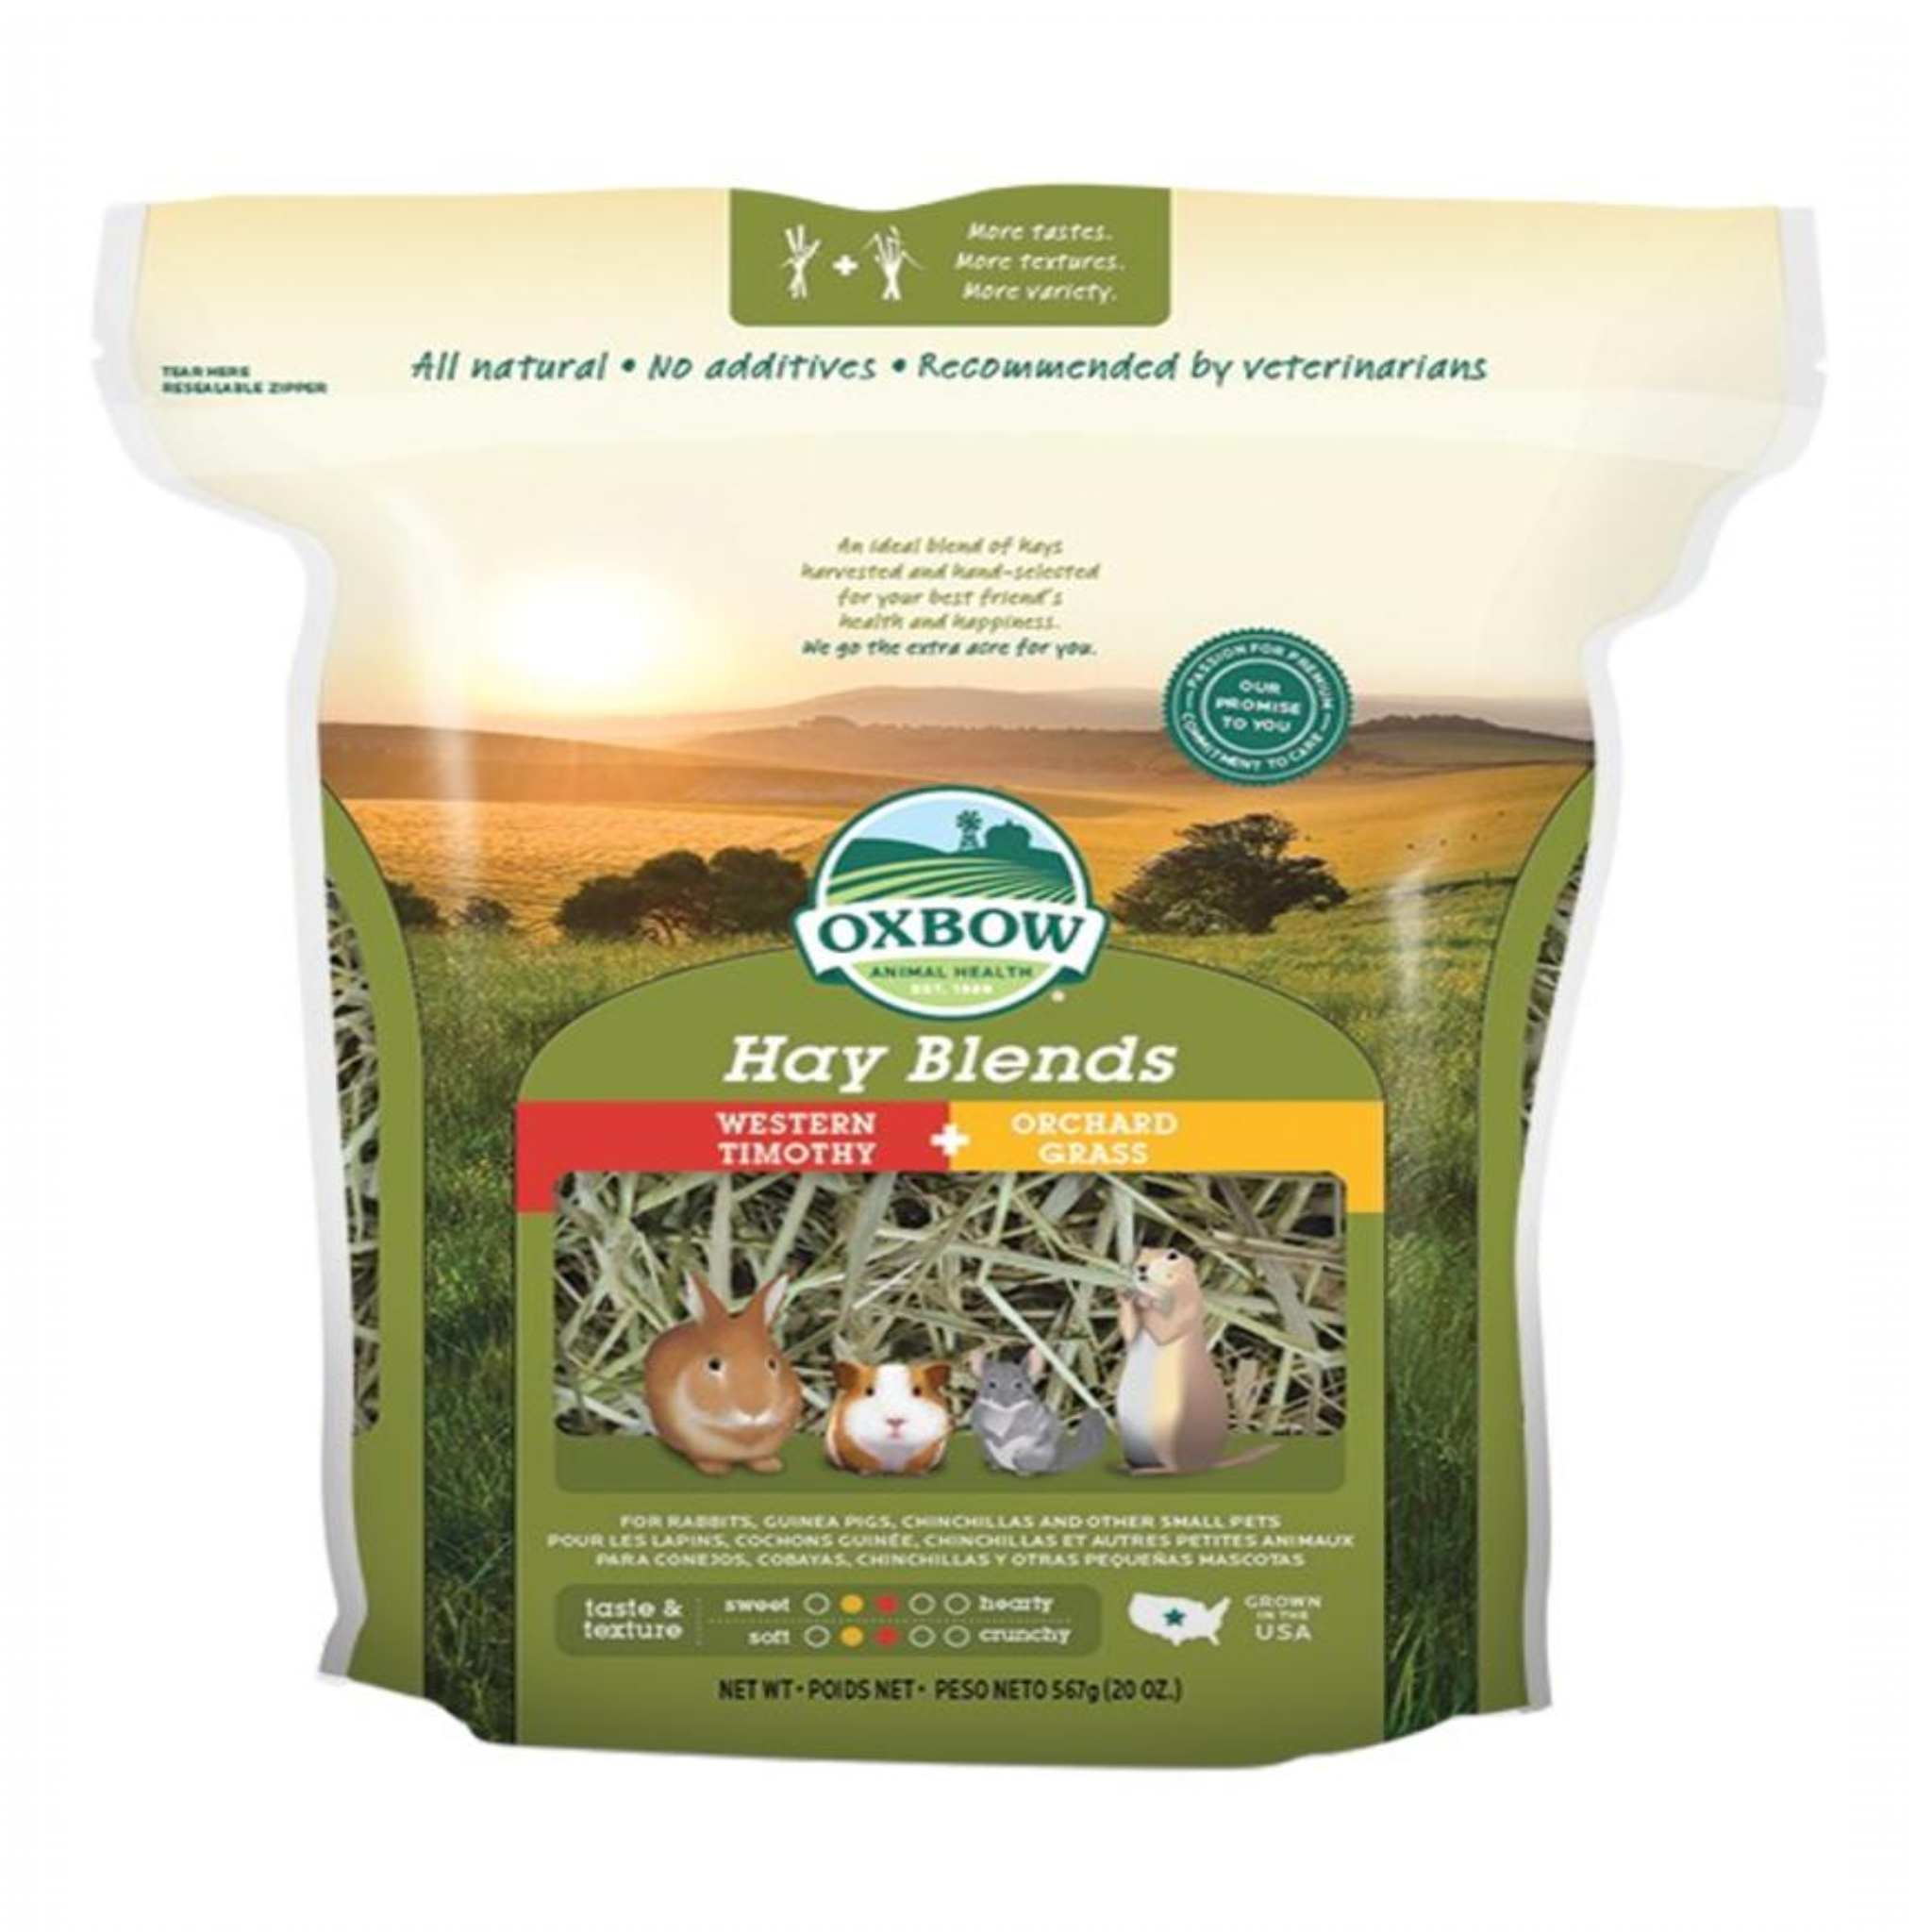 OXBOW PET PRODUCTS Oxbow Hay Blend 40 oz